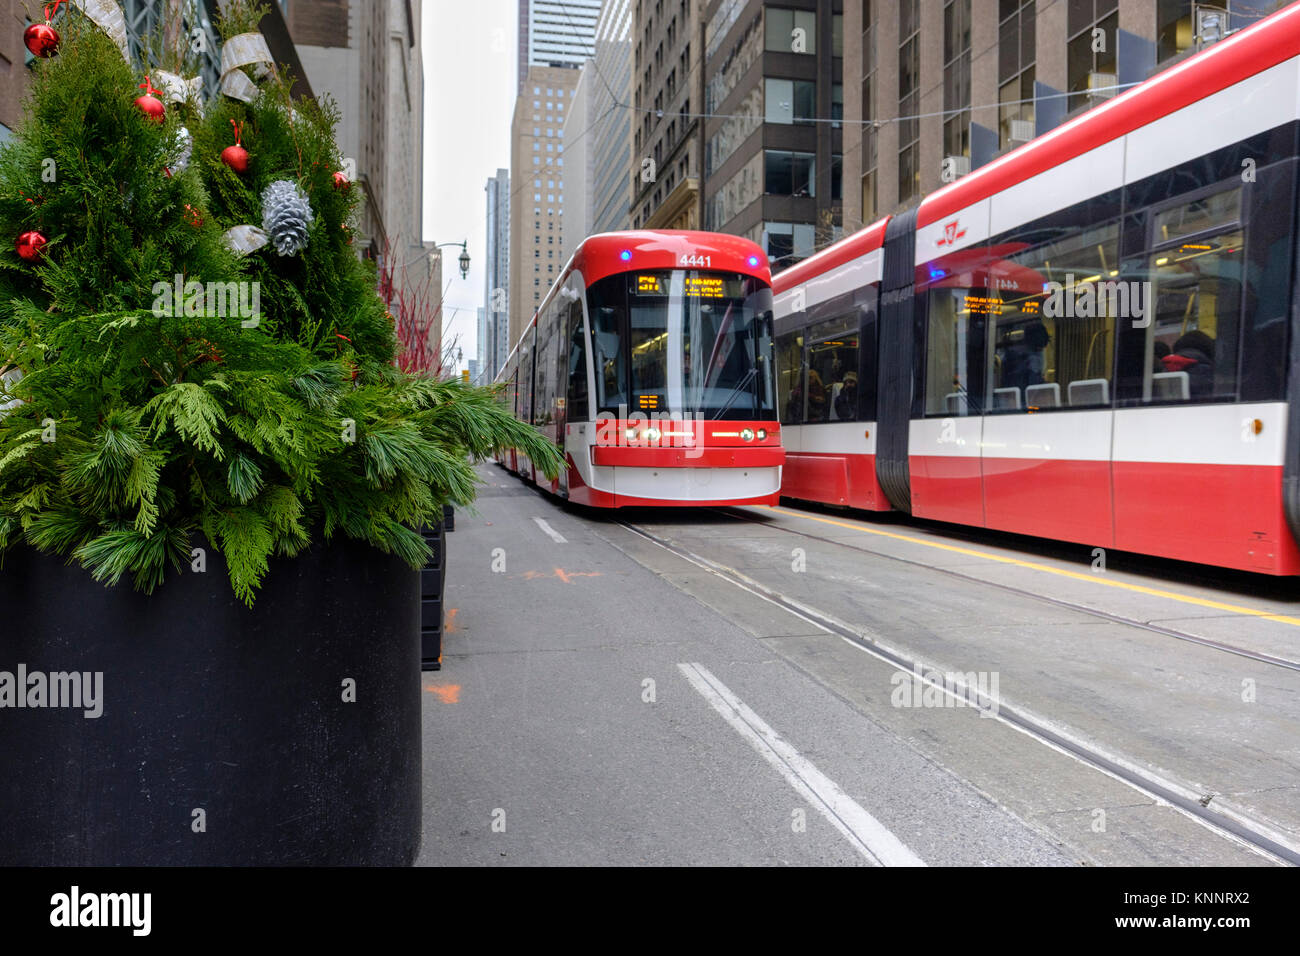 Toronto Transit Commission (TTC) Bombardier Flexity Outlook streetcar on King Street W, downtown Toronto, Canada. - Stock Image